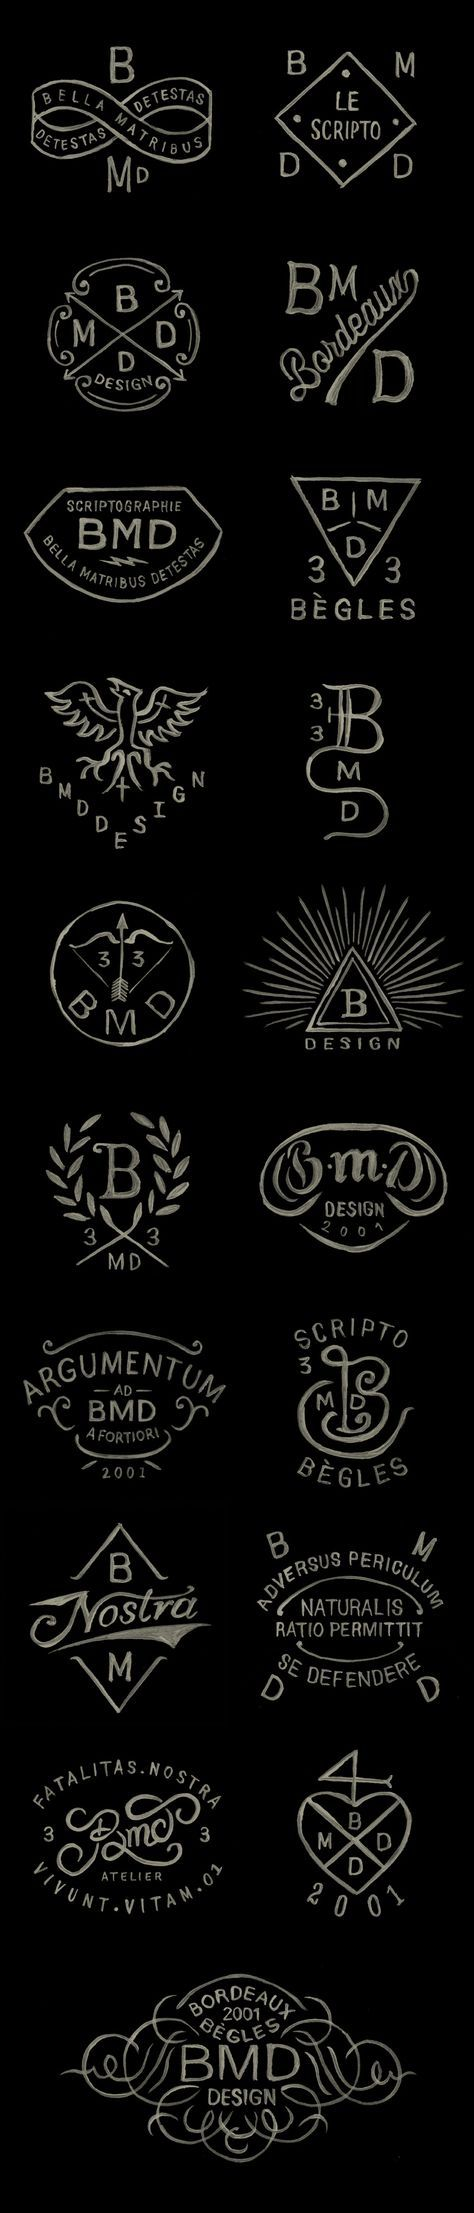 """BMD Design logos / Watercolor   <a href=""""http://www.lab333.com"""" rel=""""nofollow"""" target=""""_blank"""">www.lab333.com</a> <a href=""""https://www.facebook.com/pages/LAB-STYLE/585086788169863"""" rel=""""nofollow"""" target=""""_blank"""">www.facebook.com/...</a> <a href=""""http://www.labs333style.com"""" rel=""""nofollow"""" target=""""_blank"""">www.labs333style.com</a> <a href=""""http://www.lablikes.tumblr.com"""" rel=""""nofollow"""" target=""""_blank"""">www.lablikes.tumb...</a> <a href=""""http://www.pinterest.com/labstyle"""" rel=""""nofollow""""…"""